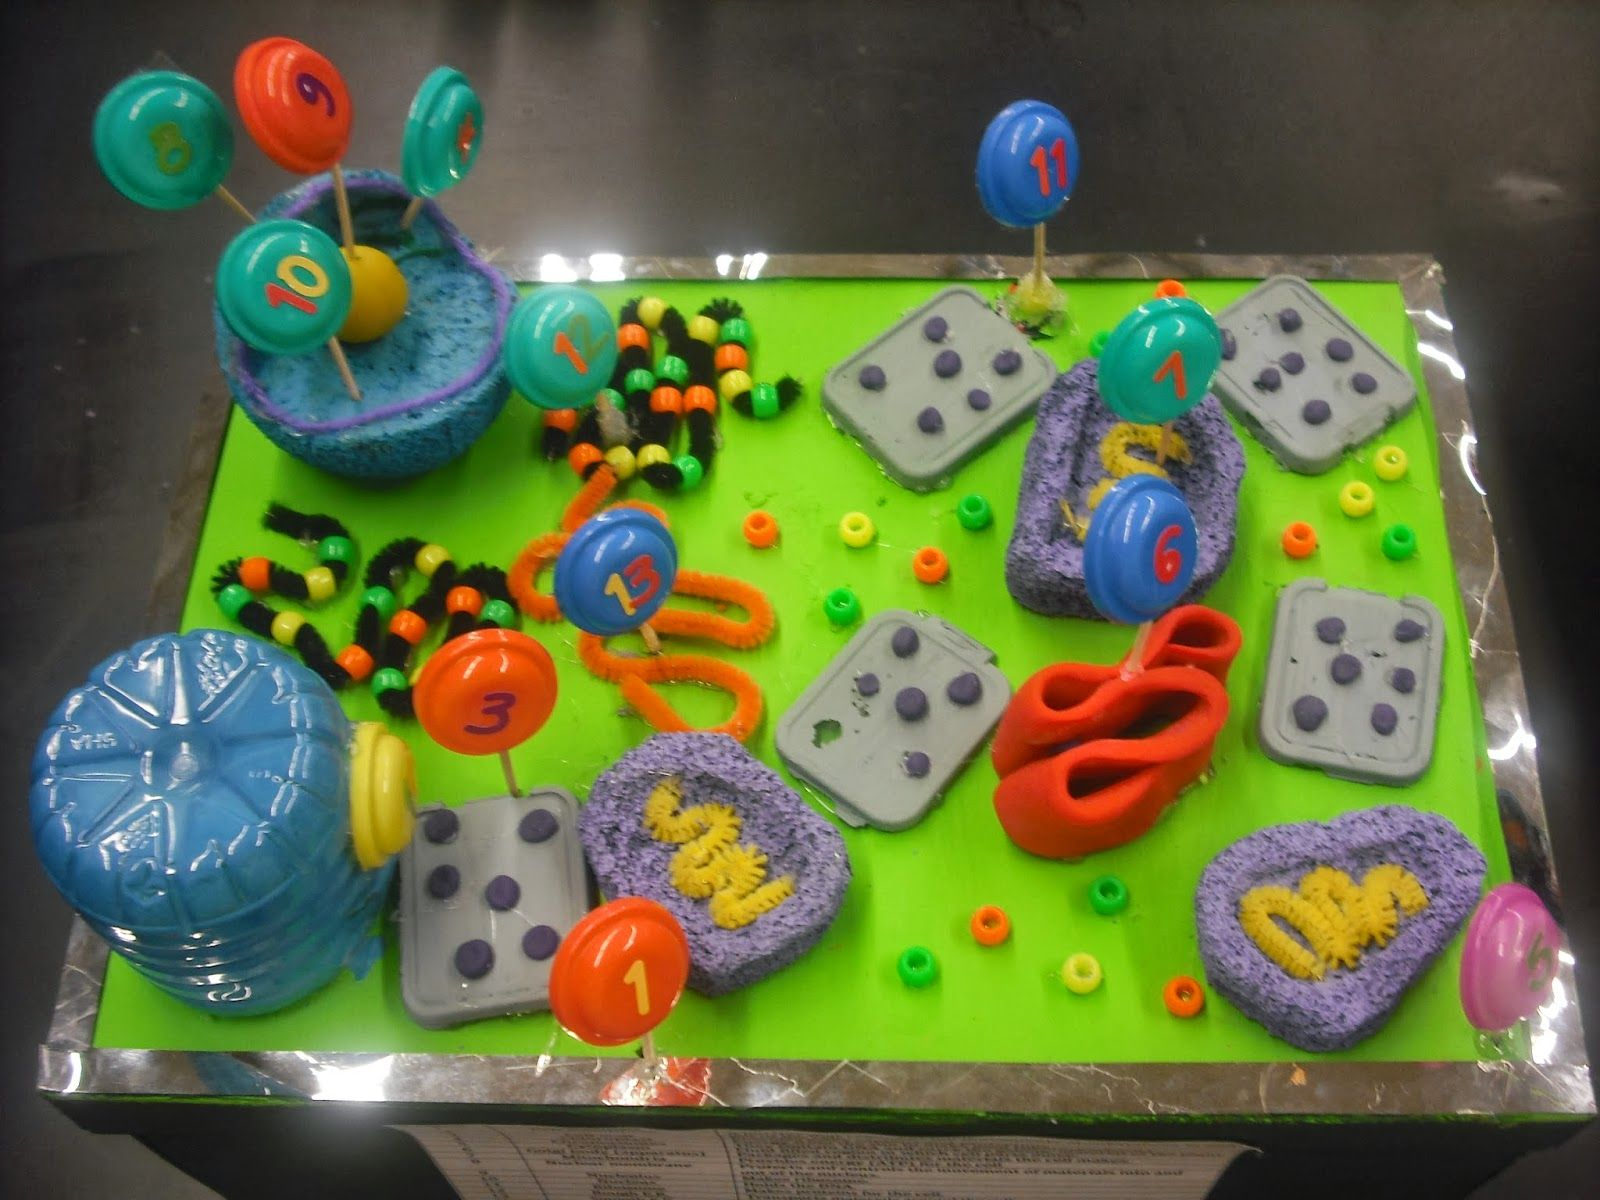 Pin by randy wolfmeyer on school projects pinterest cell model pin by randy wolfmeyer on school projects pinterest cell model plant cell and students ccuart Gallery